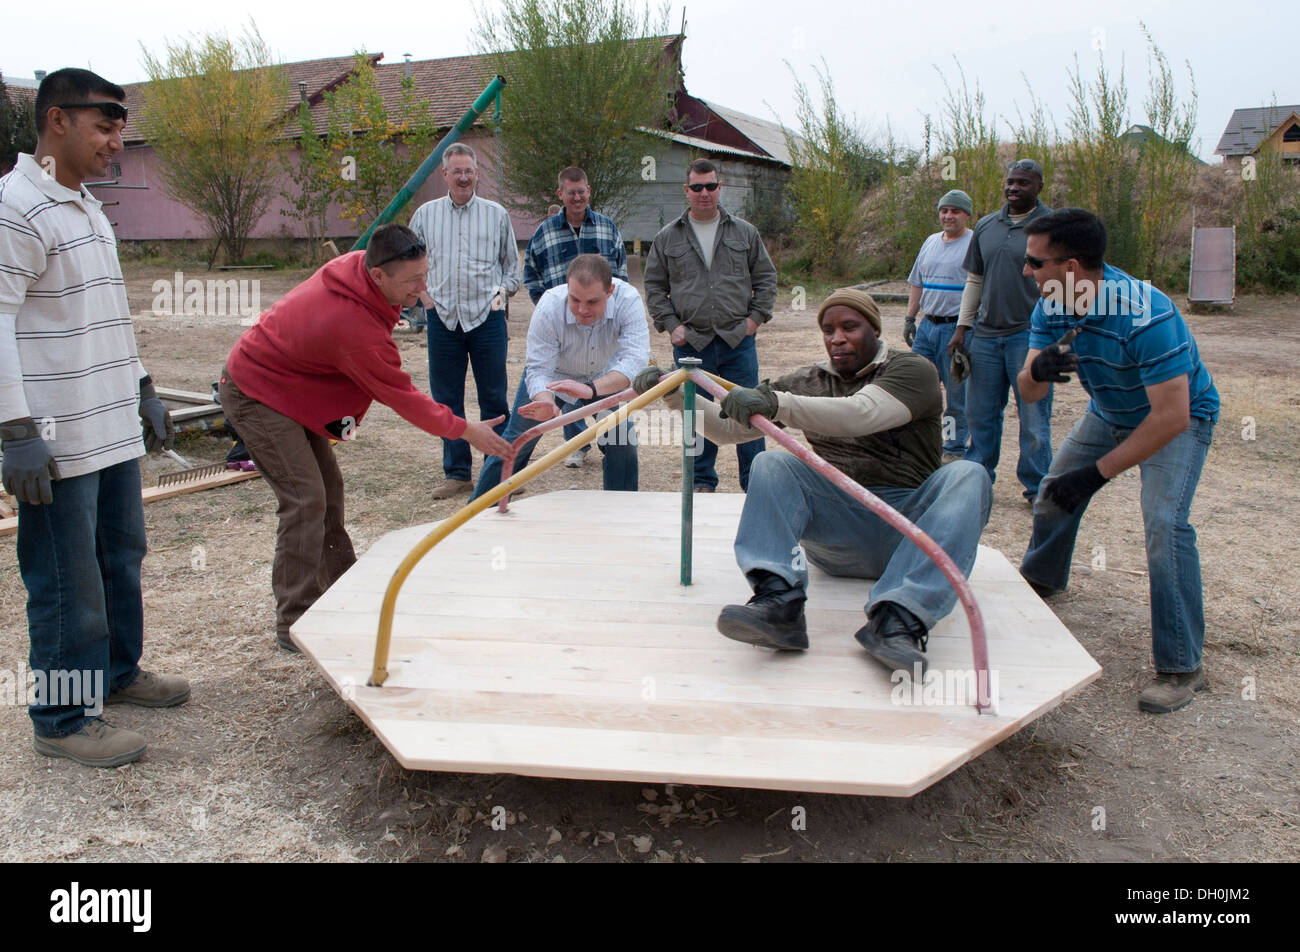 Members of the 'Manas Top 3' and Transit Center at Manas, Kyrgyzstan, try out a refurbished merry-go-round at the Nadyezhda Children's Rehabilitation Center playground in Bishkek, Oct. 23, 2013. The 'Manas Top 3' is partnered with the rehabilitation cente - Stock Image